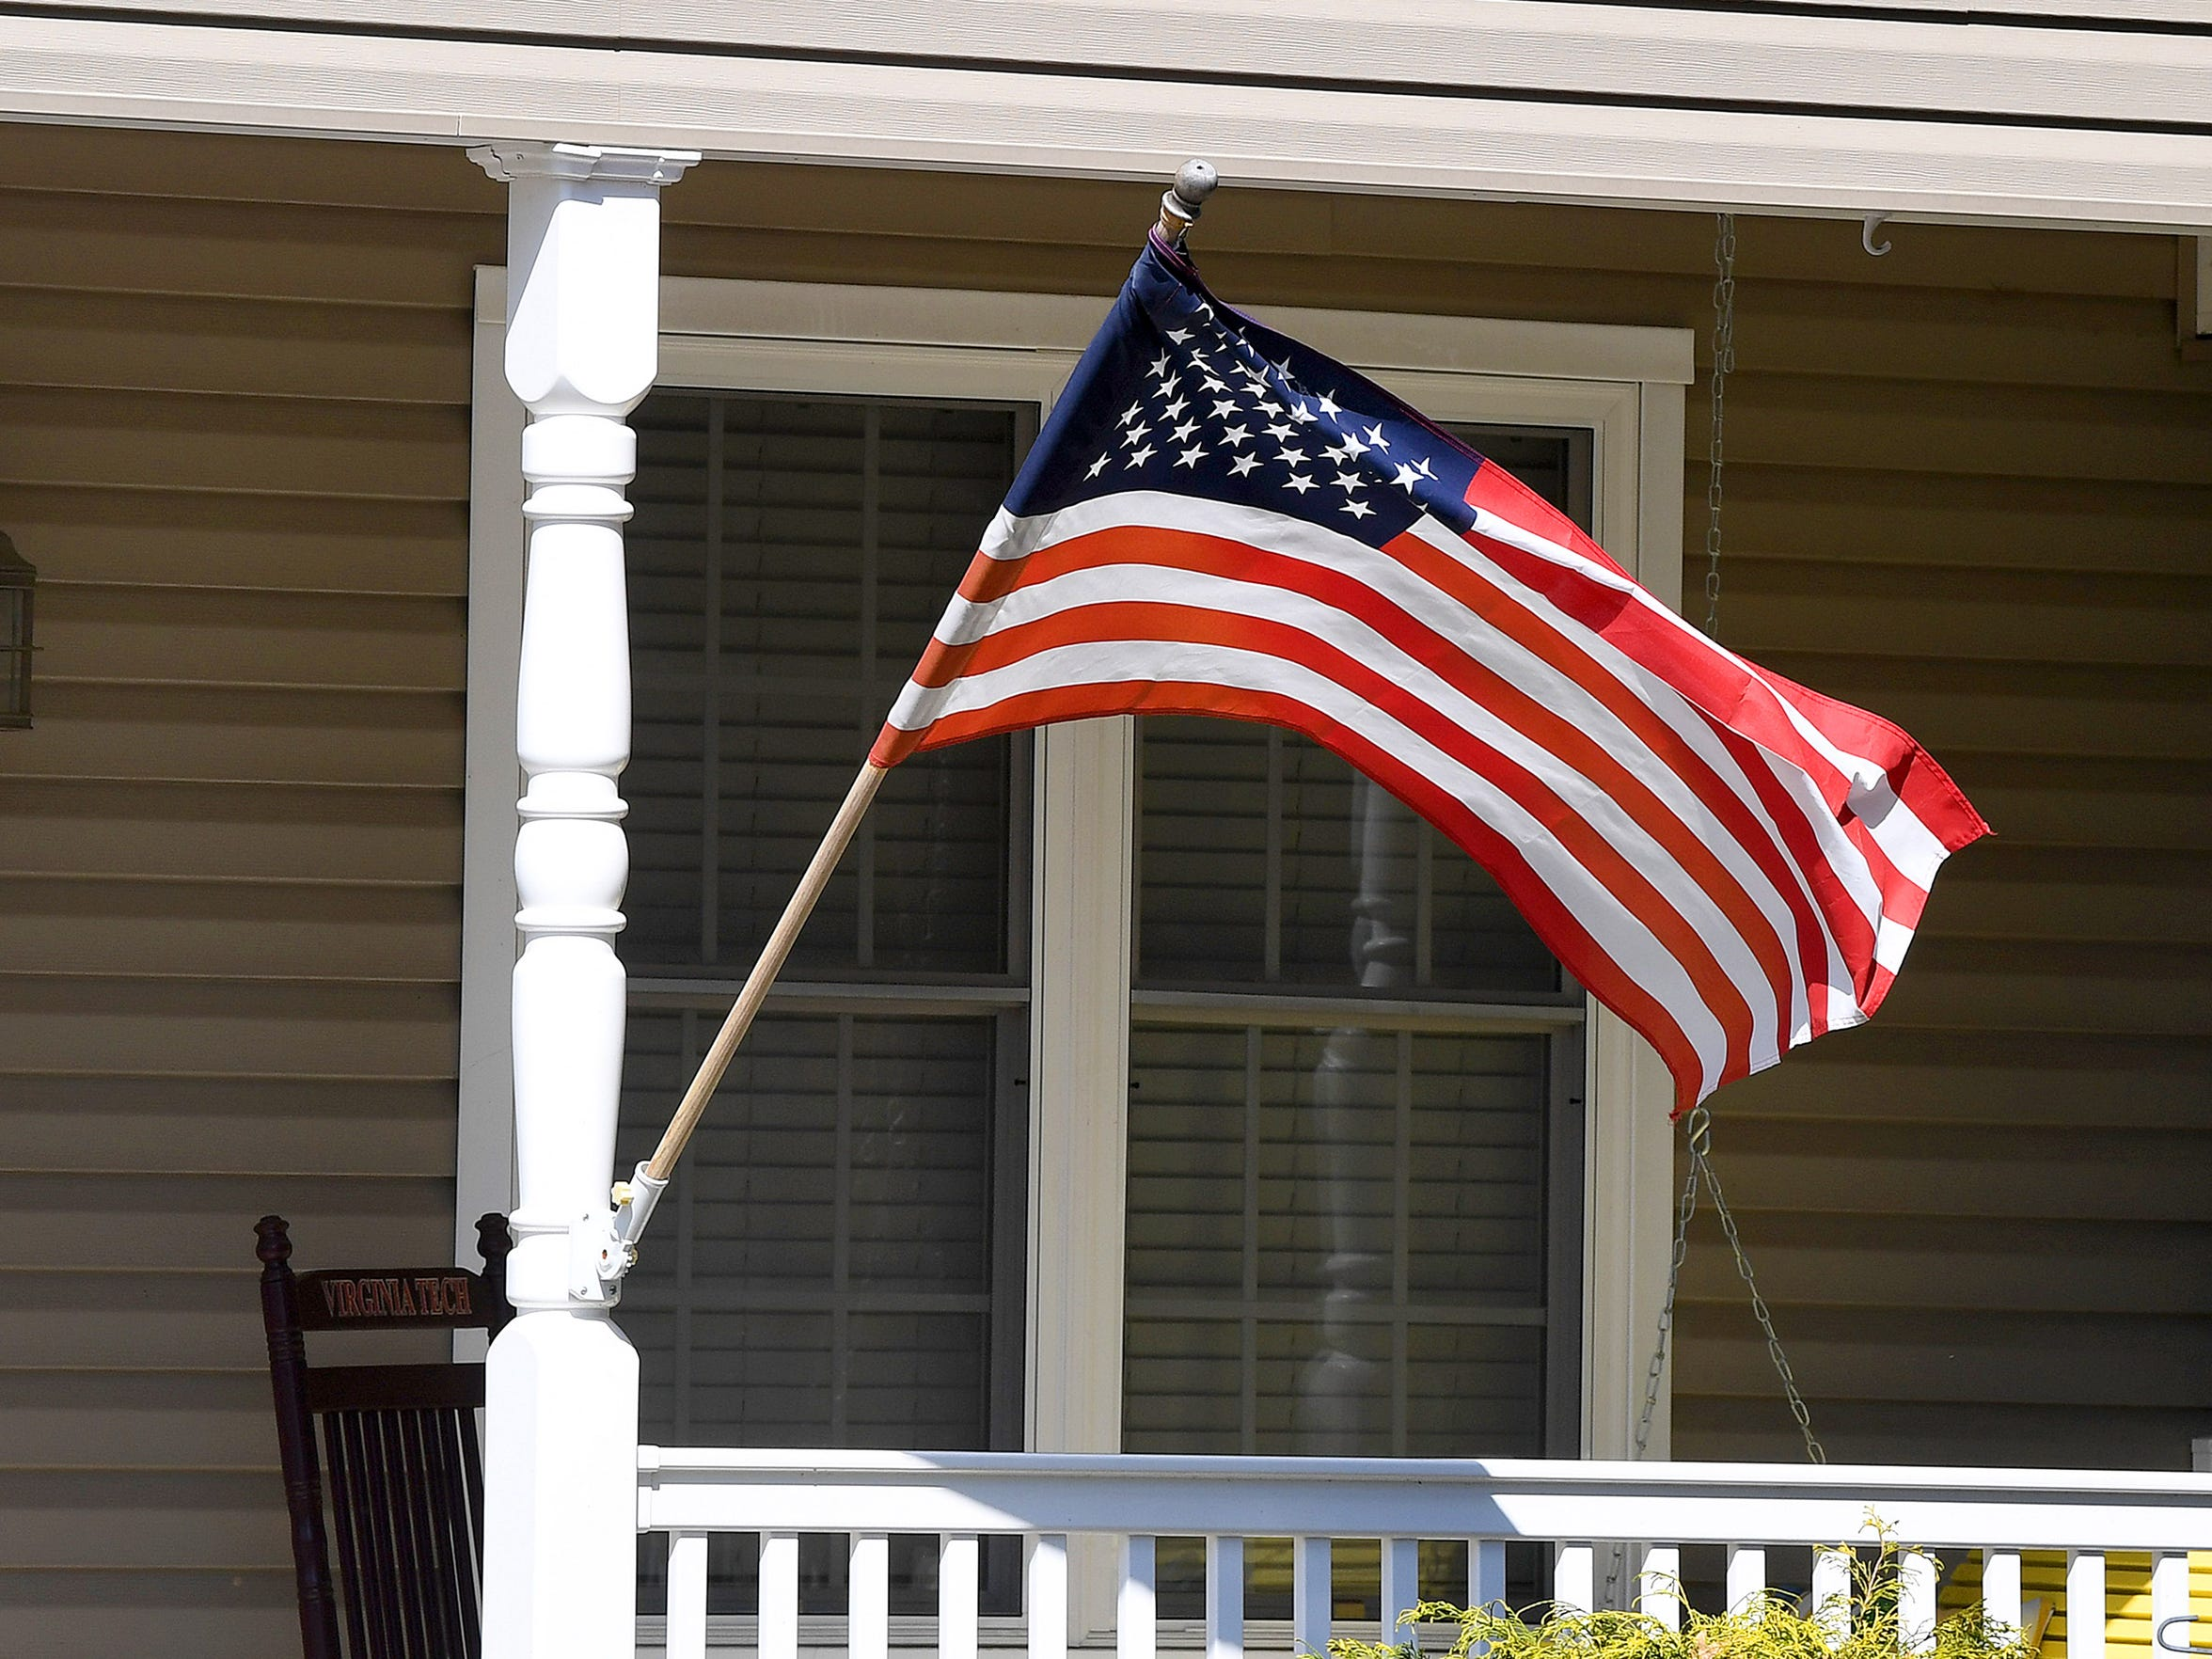 A flag hangs out front of one of the many residences